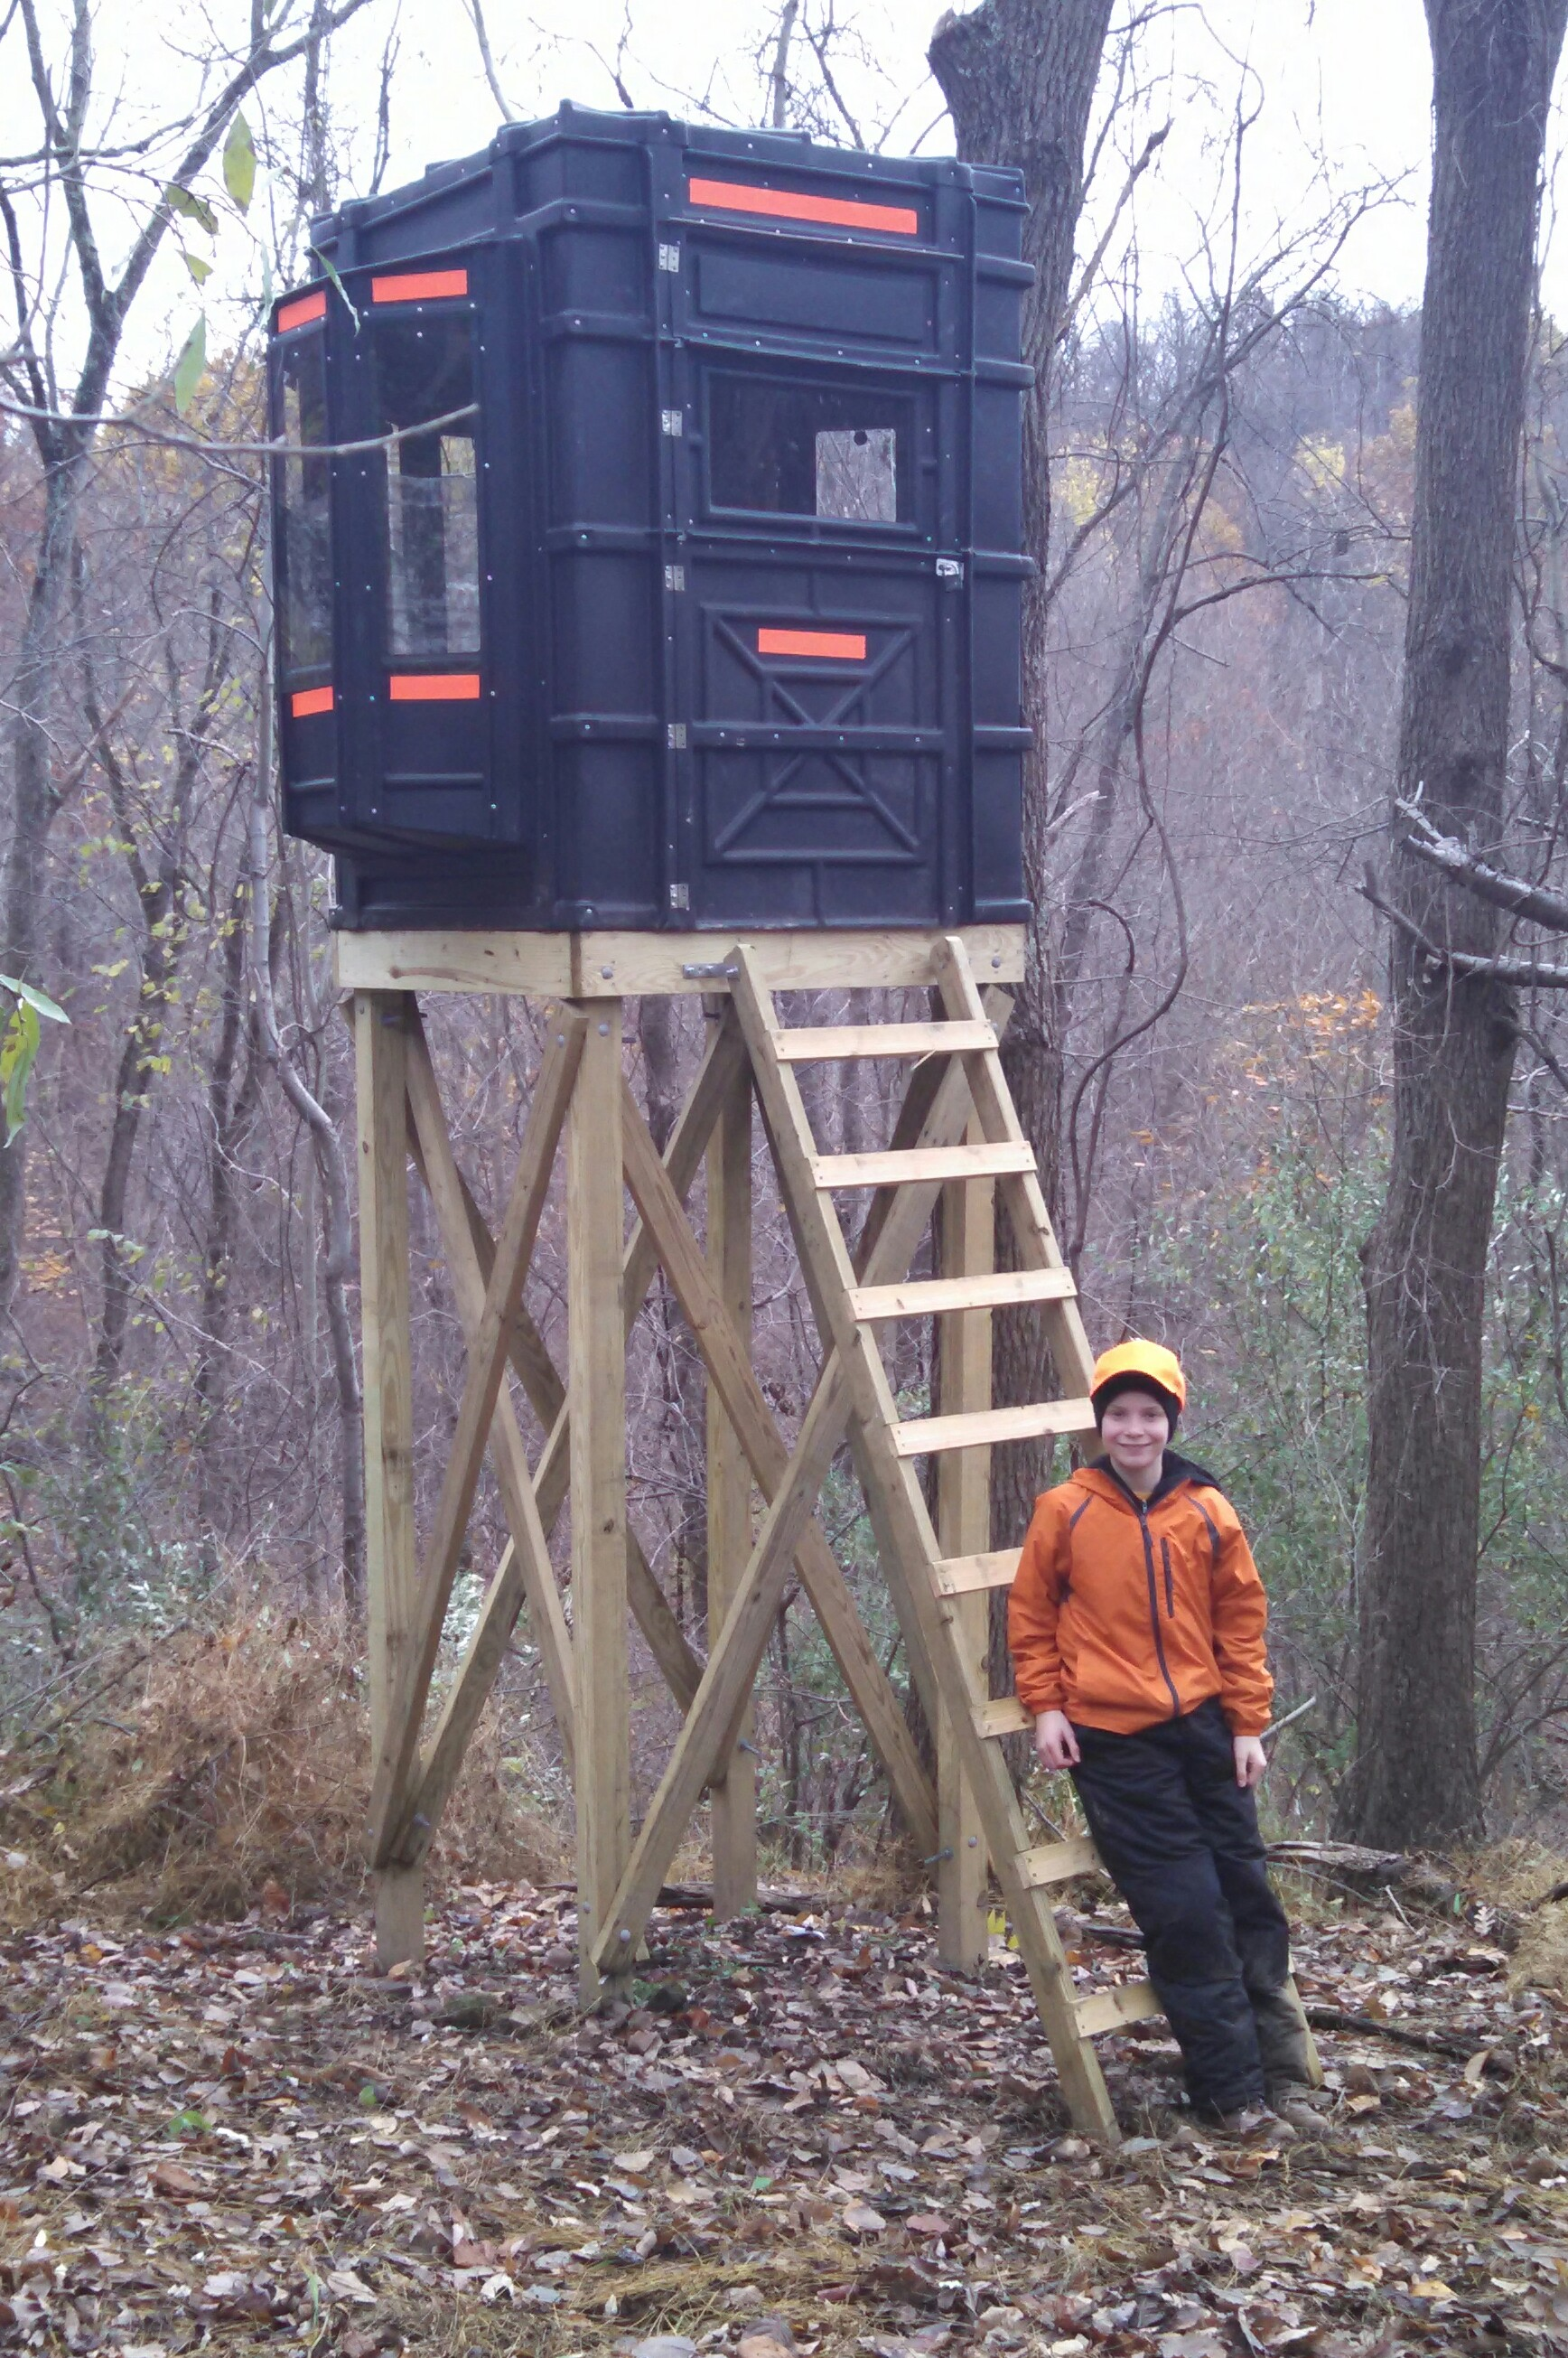 - After installing his box blind for bow hunting, this customer had the ideal set up for both he and his son (in the photo). He was very satisfied with the level of service provided when he needed help setting up his windows... - Mike C.